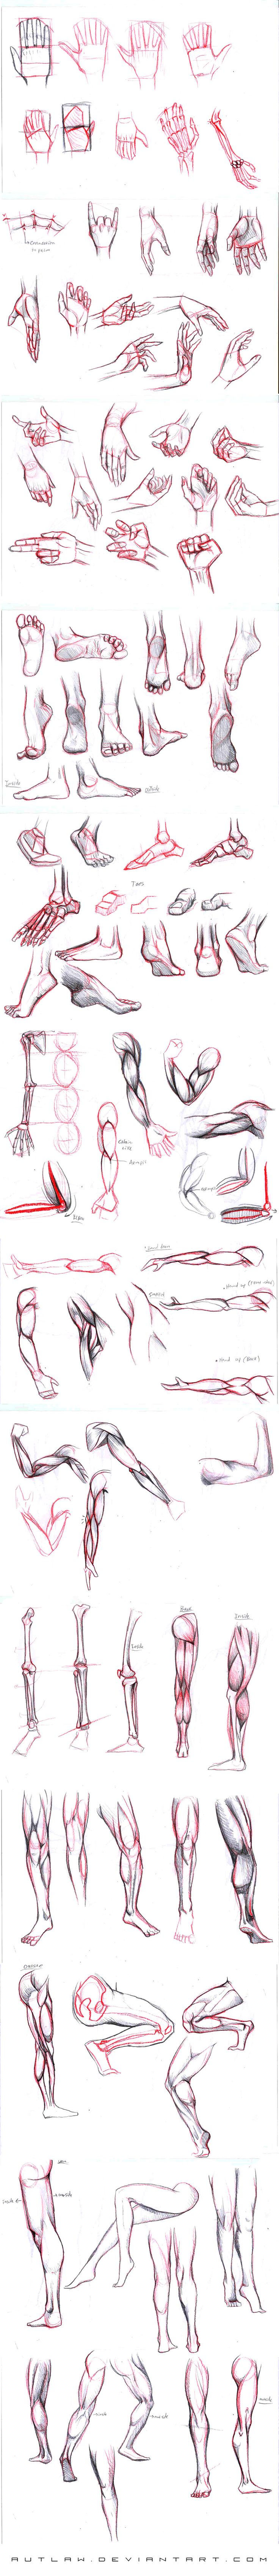 Studies part 2 by Autlaw.deviantart.com on @deviantART